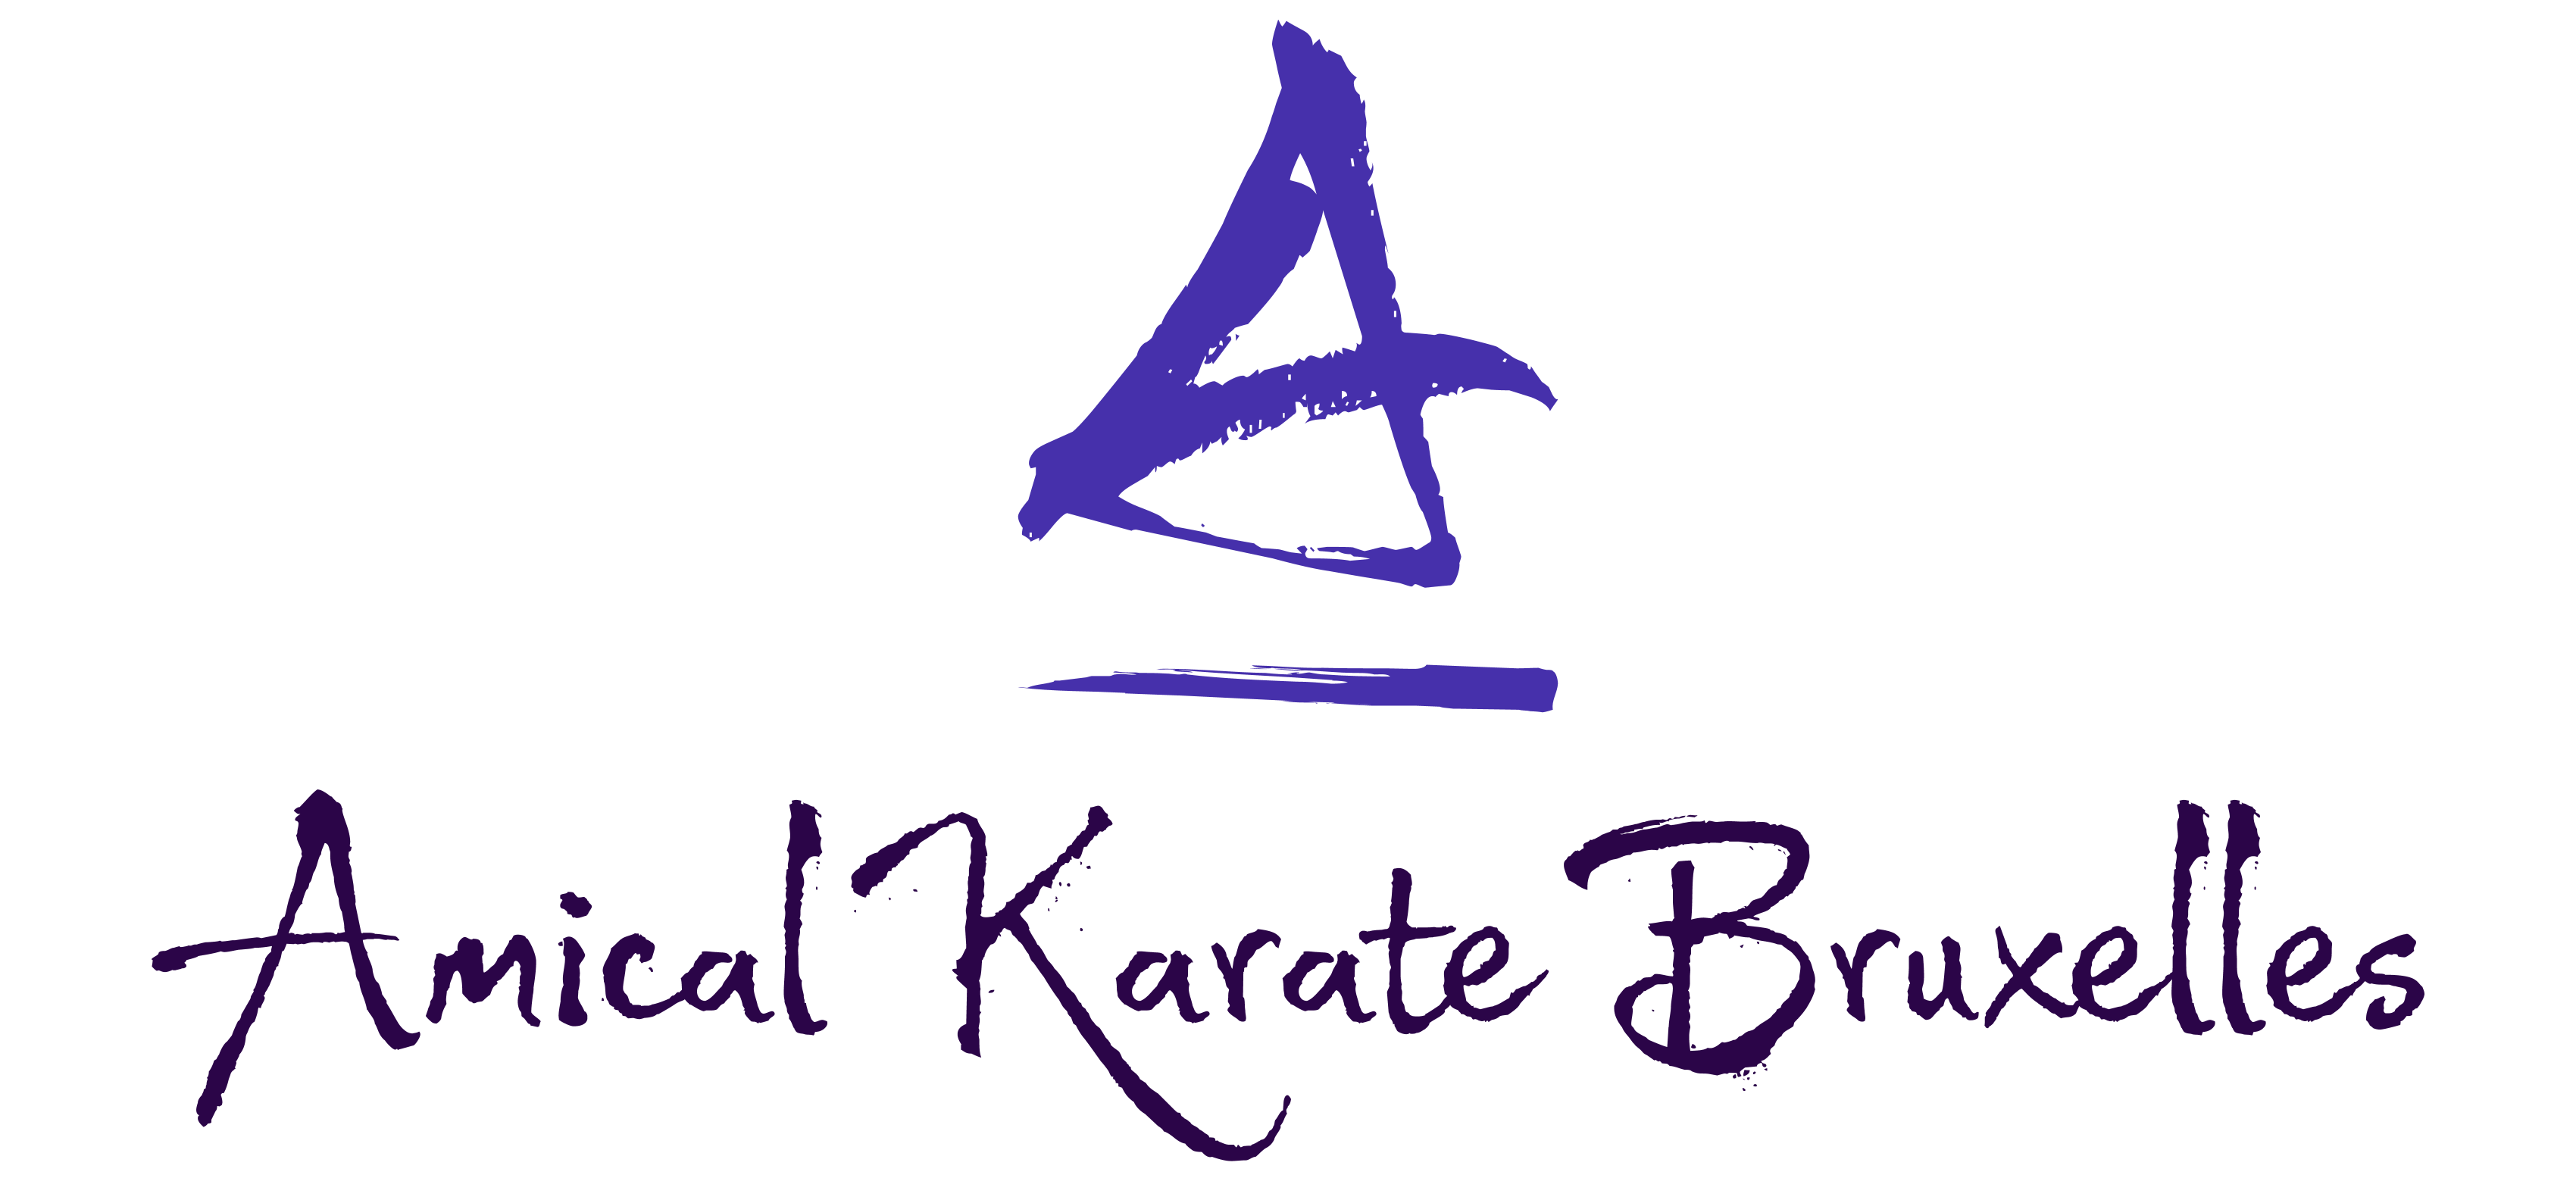 AMICAL KARATE CLUB BRUXELLES